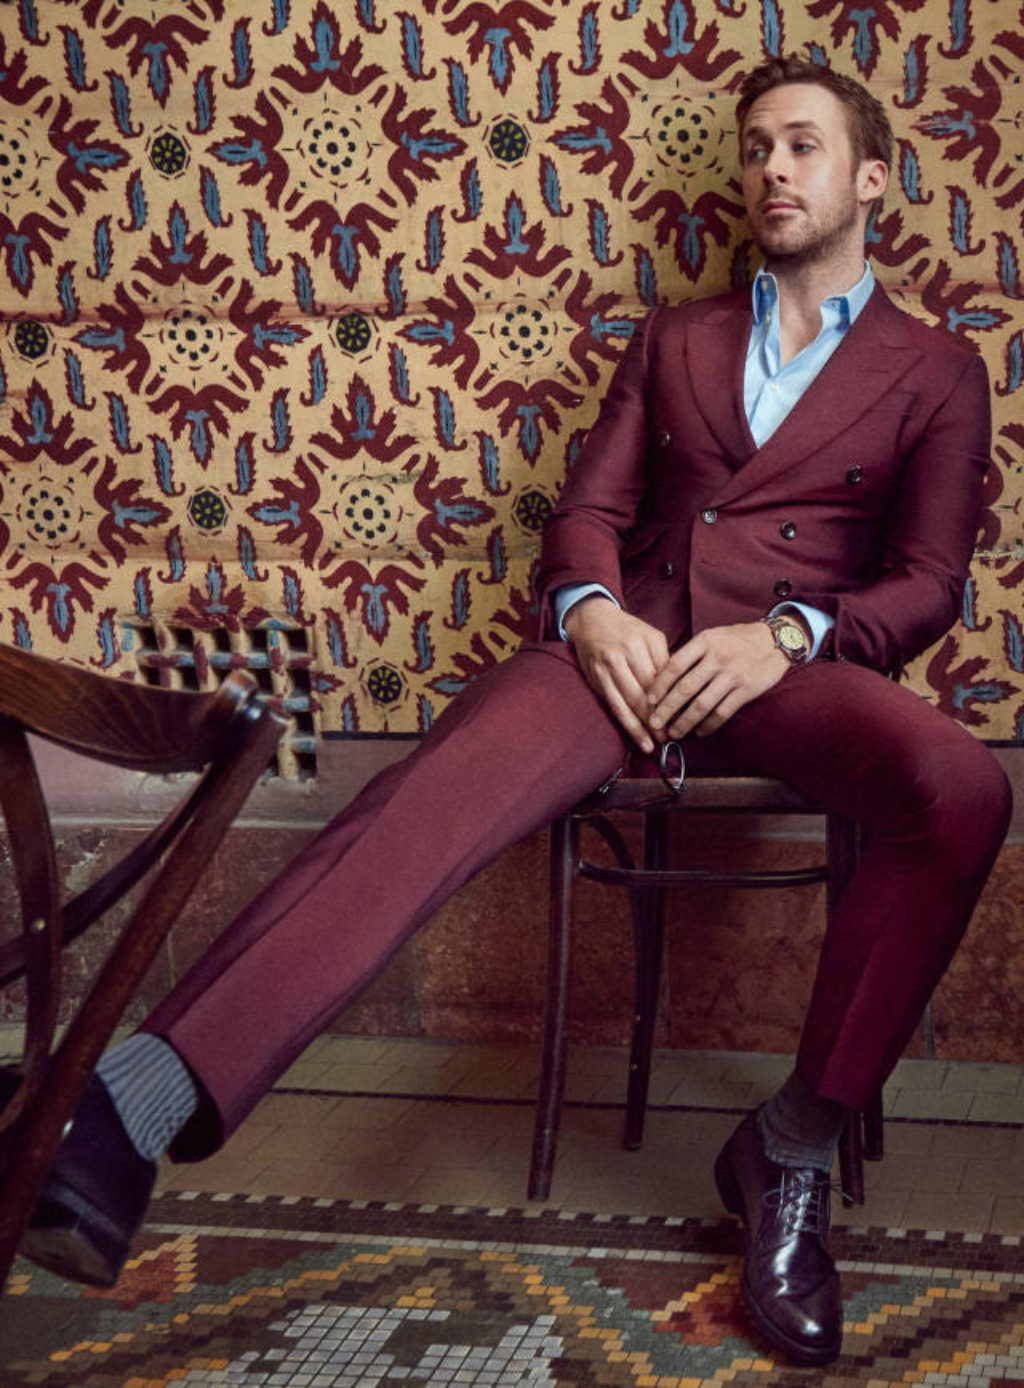 Actor Ryan Gosling in a Cranberry Double Breasted Suit sitting on a wooden cafe chair against a maroon and blue floral tapestry